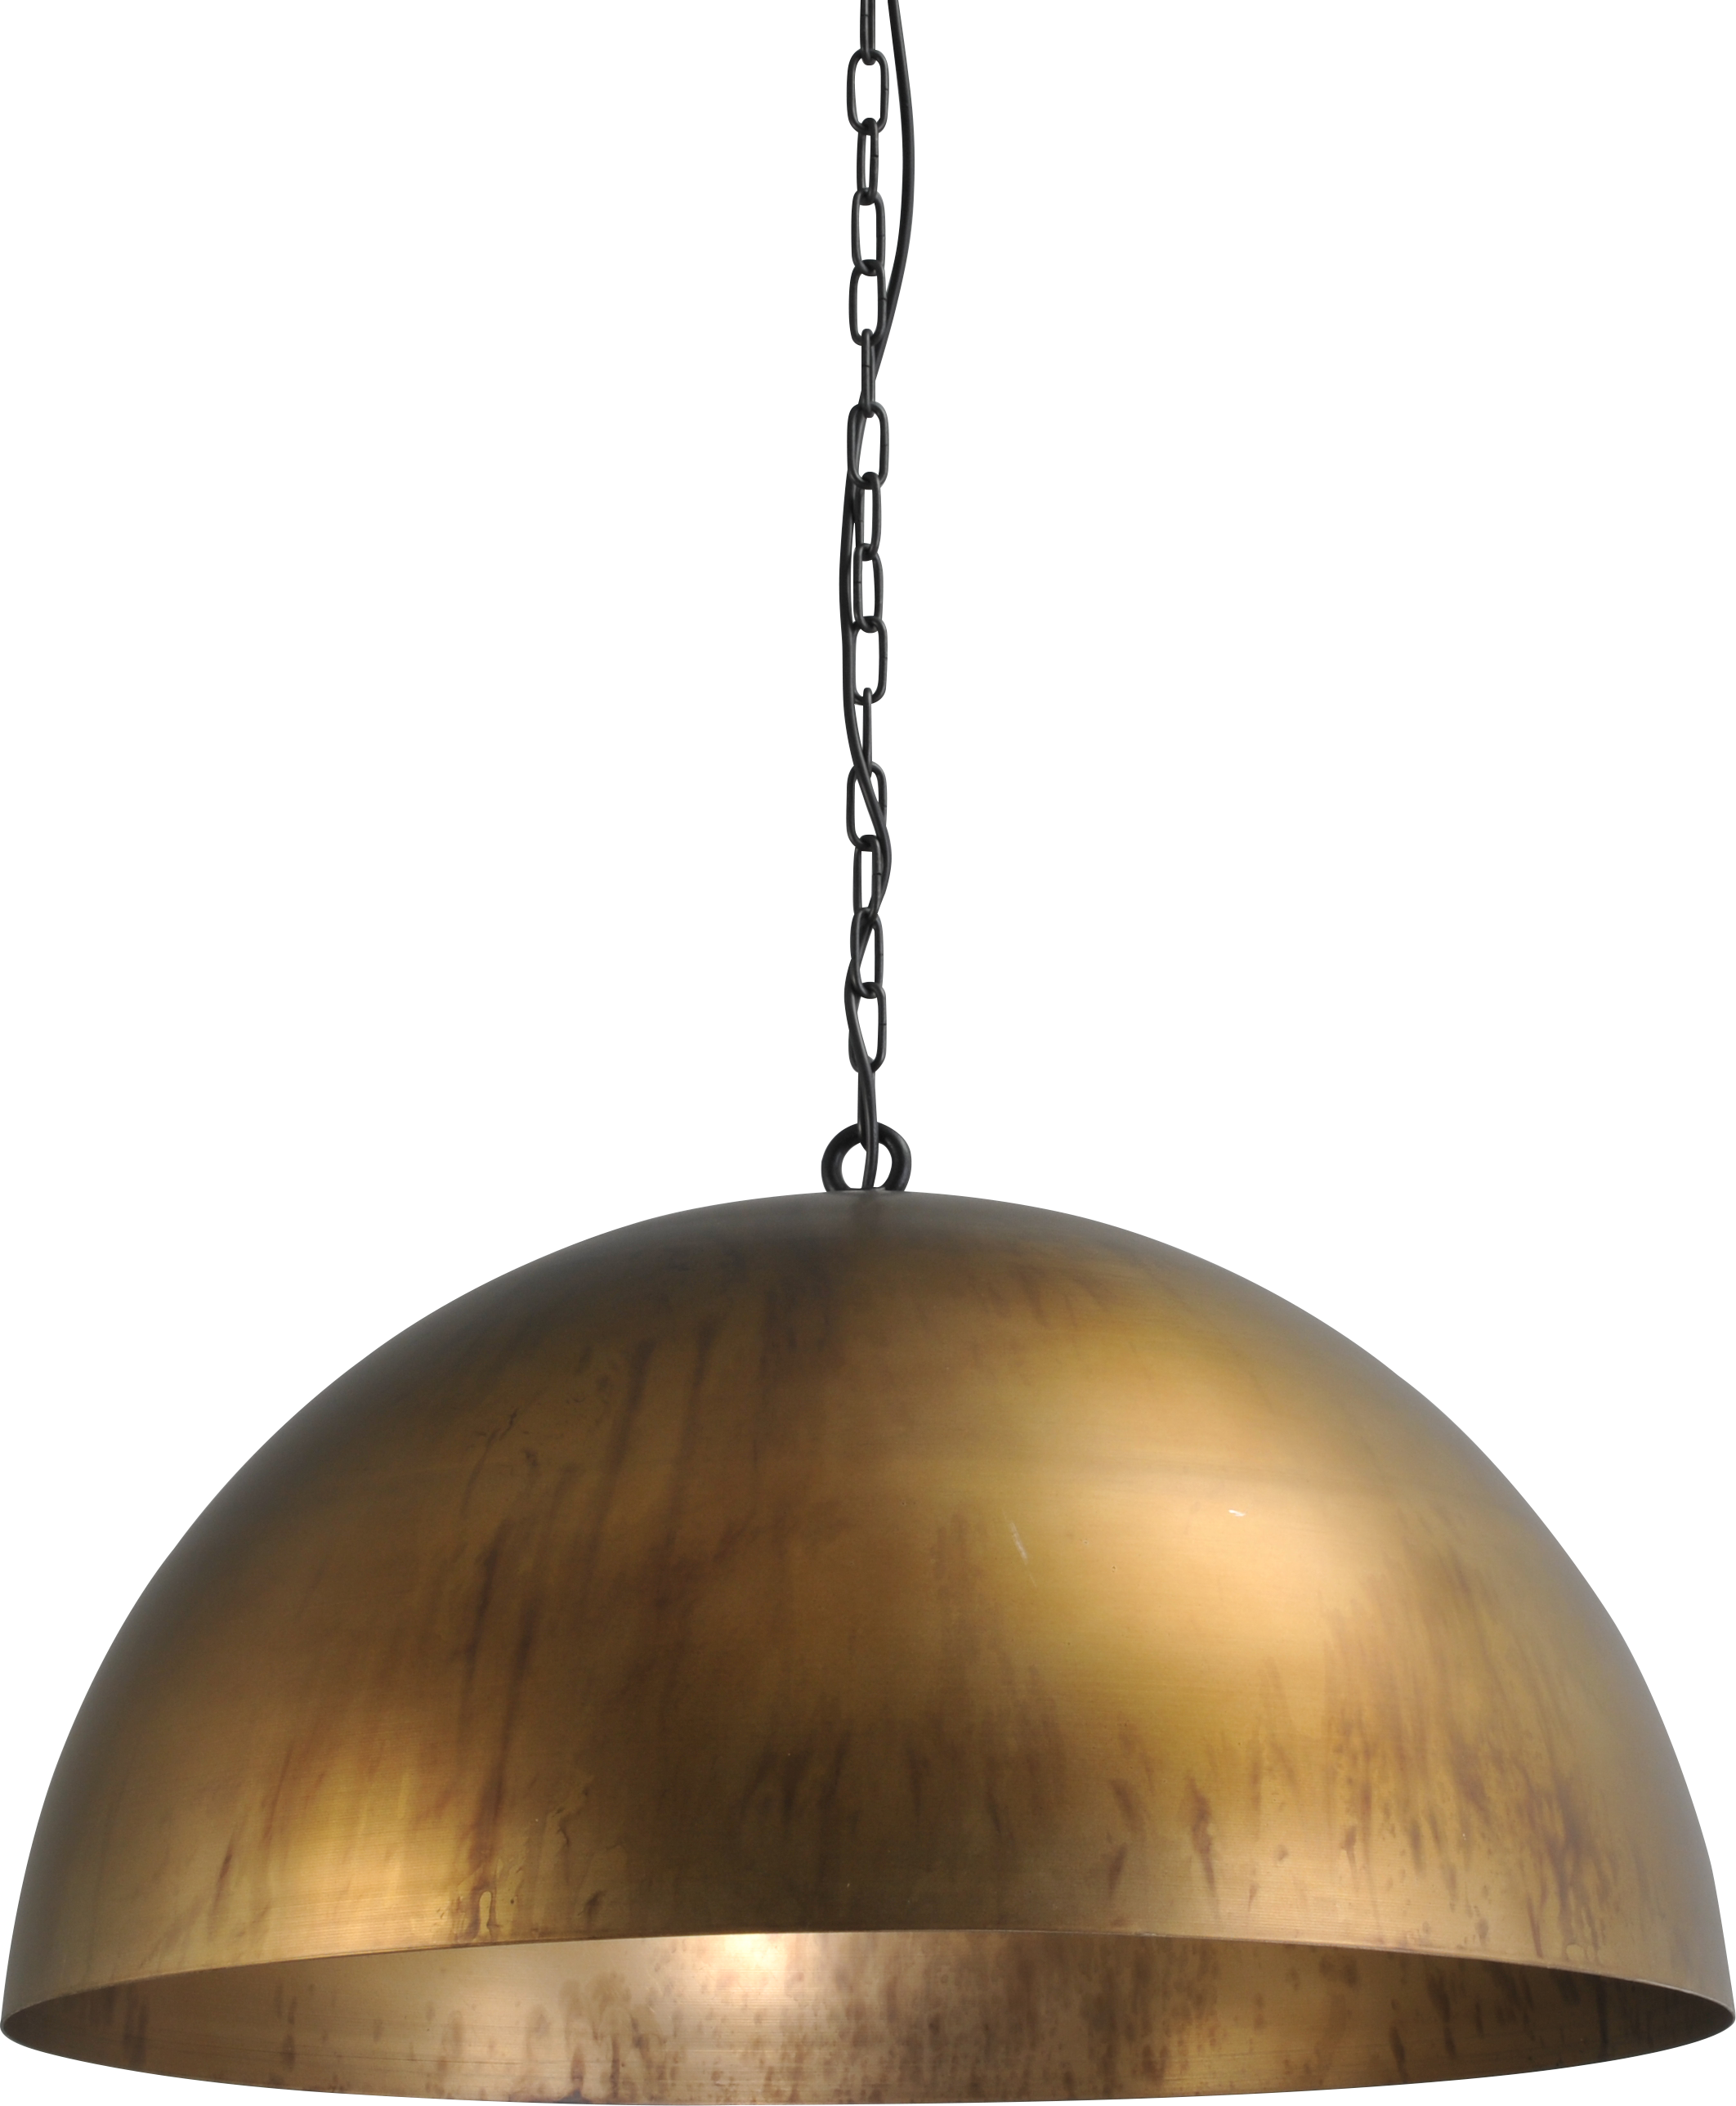 Larino Antique Brass HL LARINO Ø80CM ANTIQUE BRASS OUTSIDE